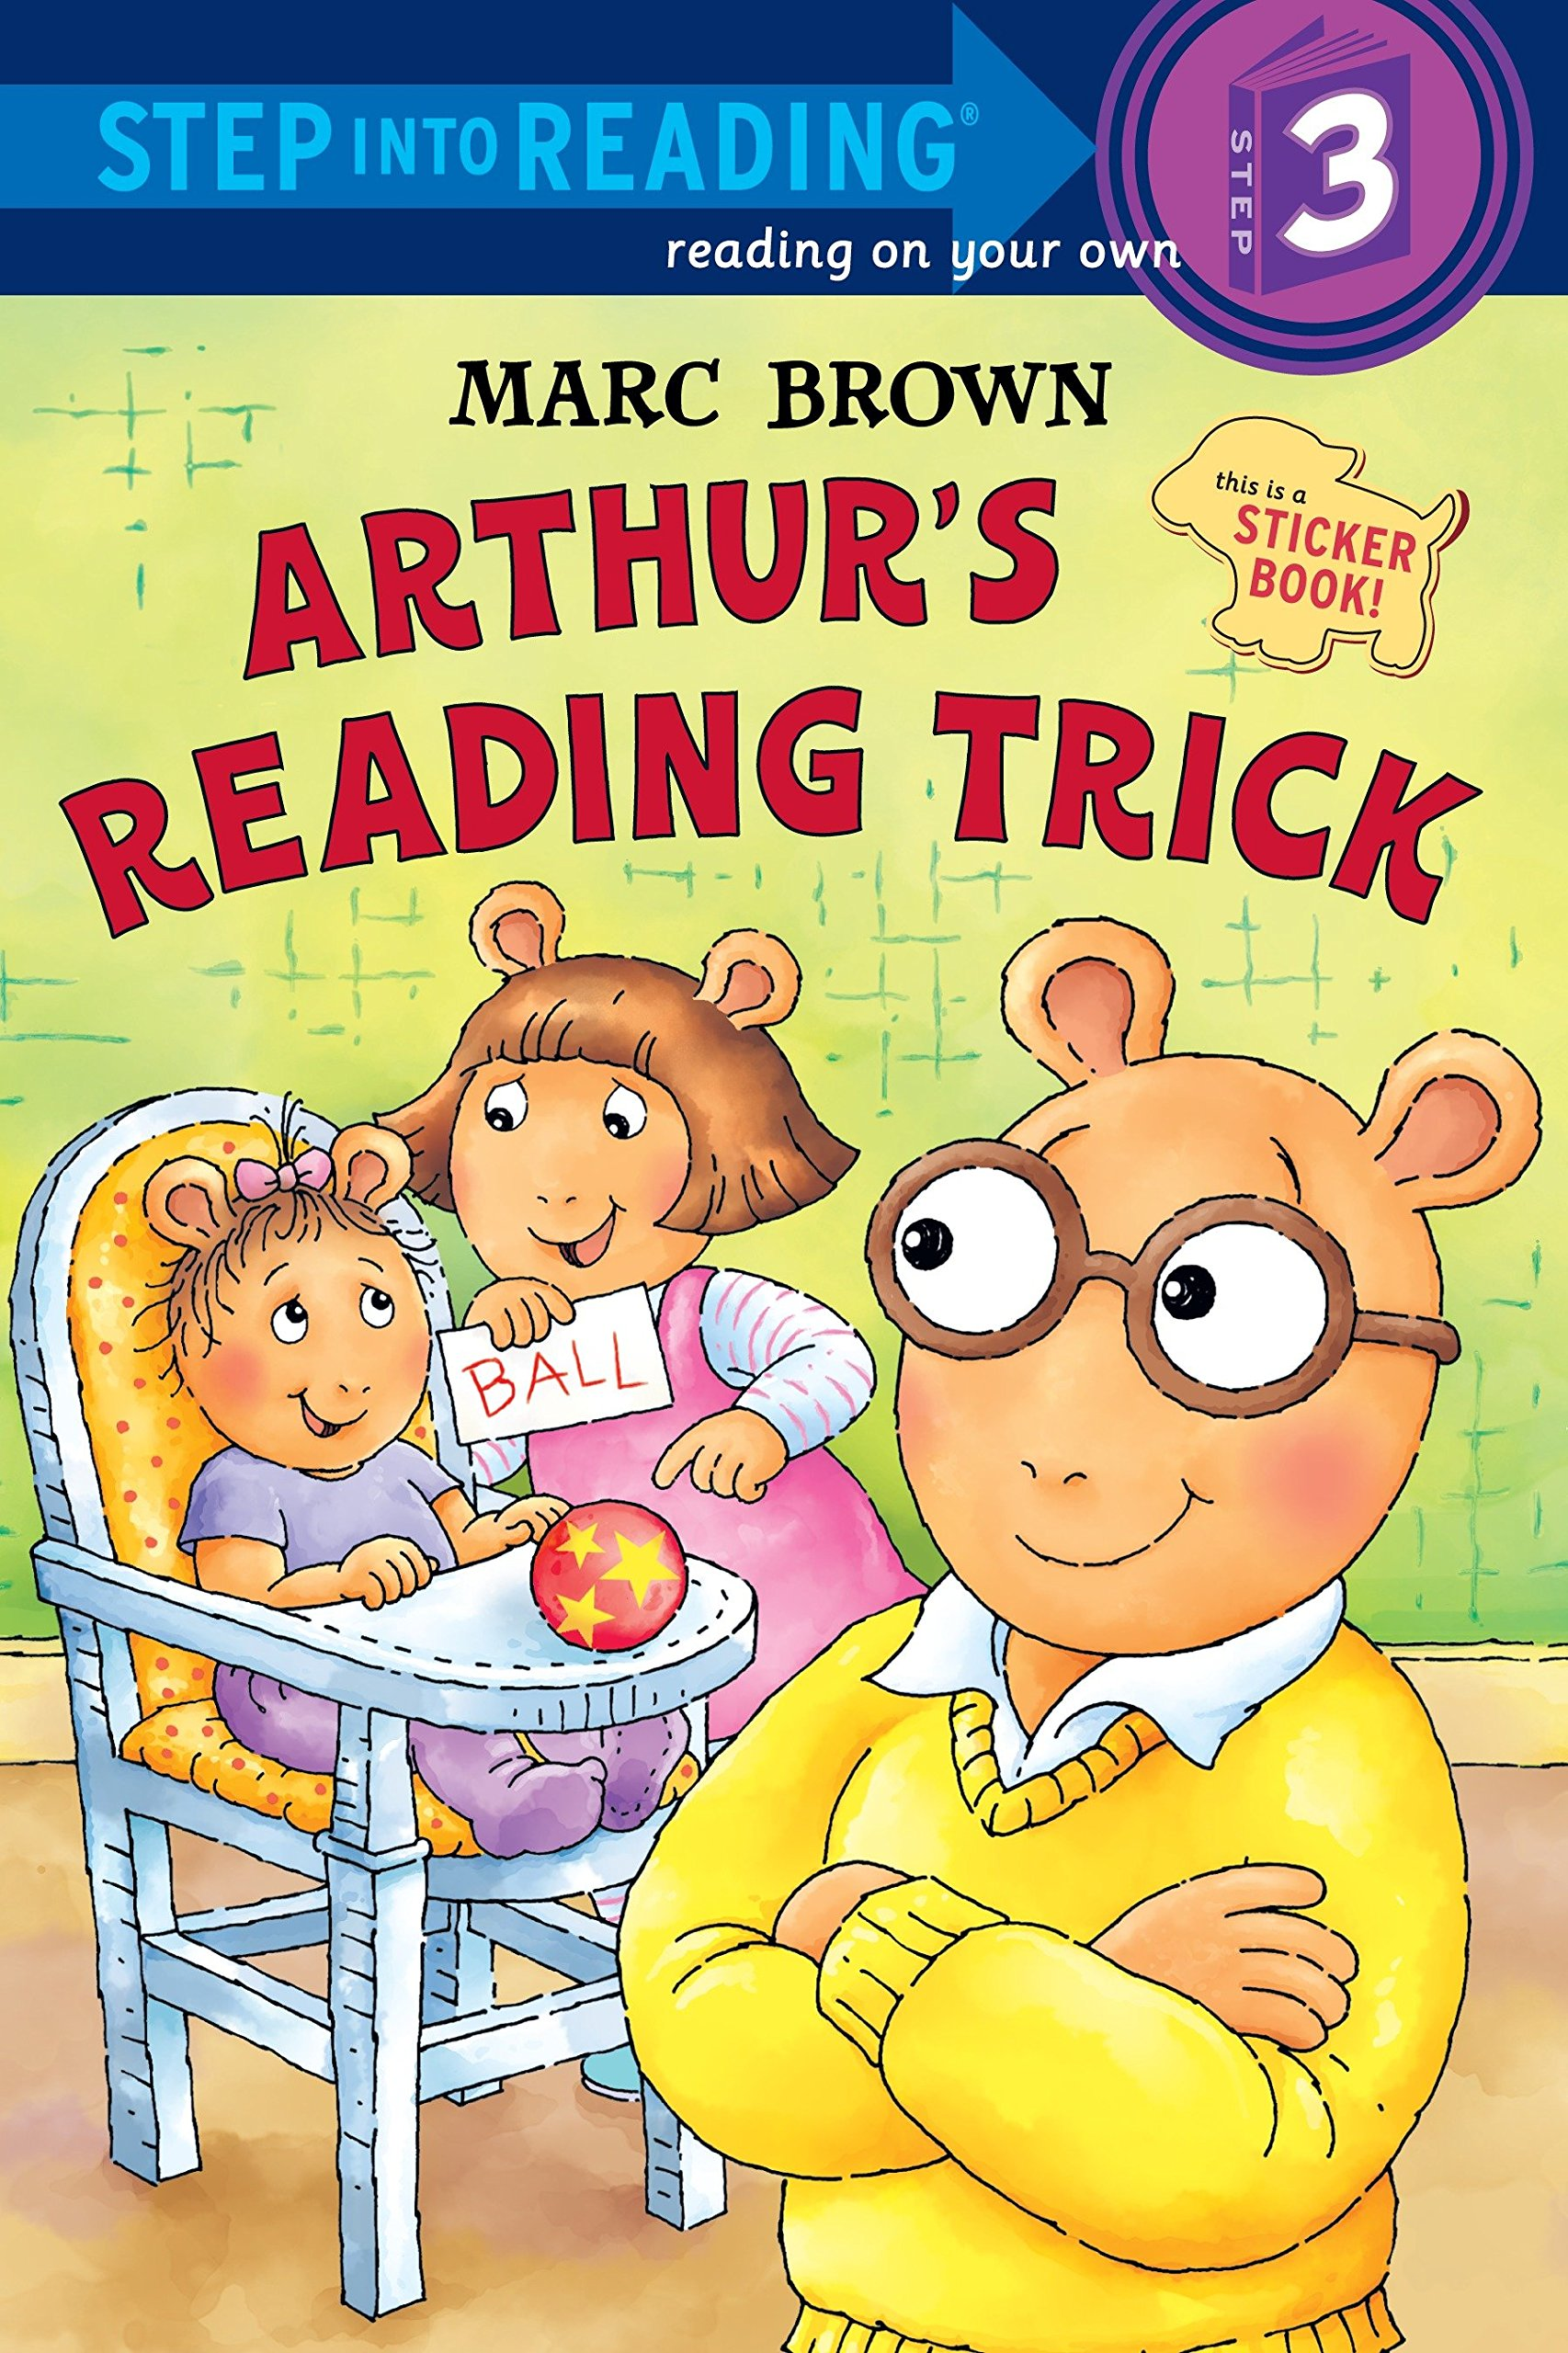 Arthur's Reading Trick (Step into Reading) pdf